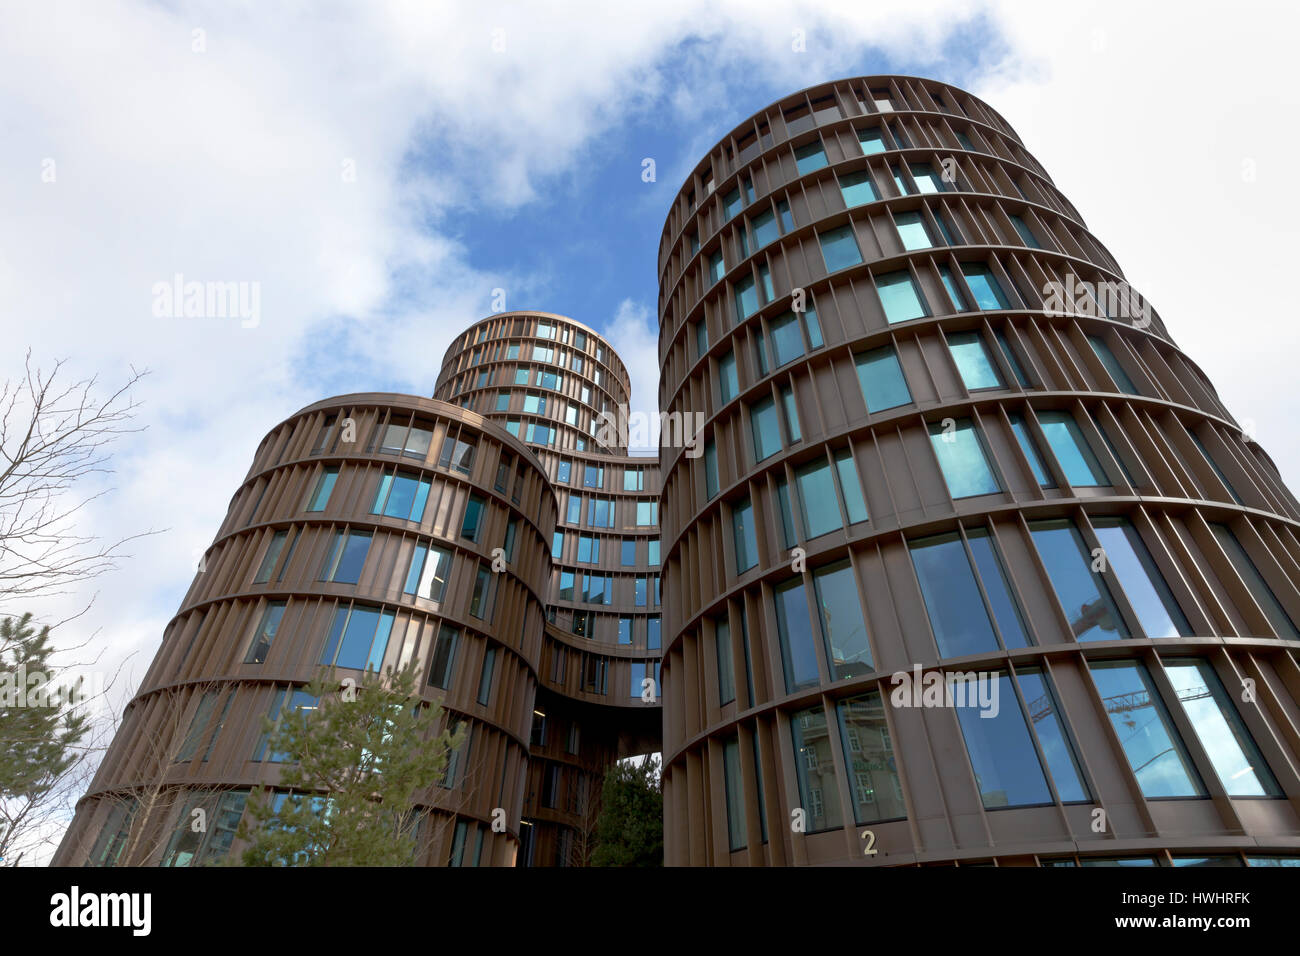 Axel Towers, five round towers on Axel Square, Axel Torv, Vesterbrogade, Copenhagen. - Stock Image